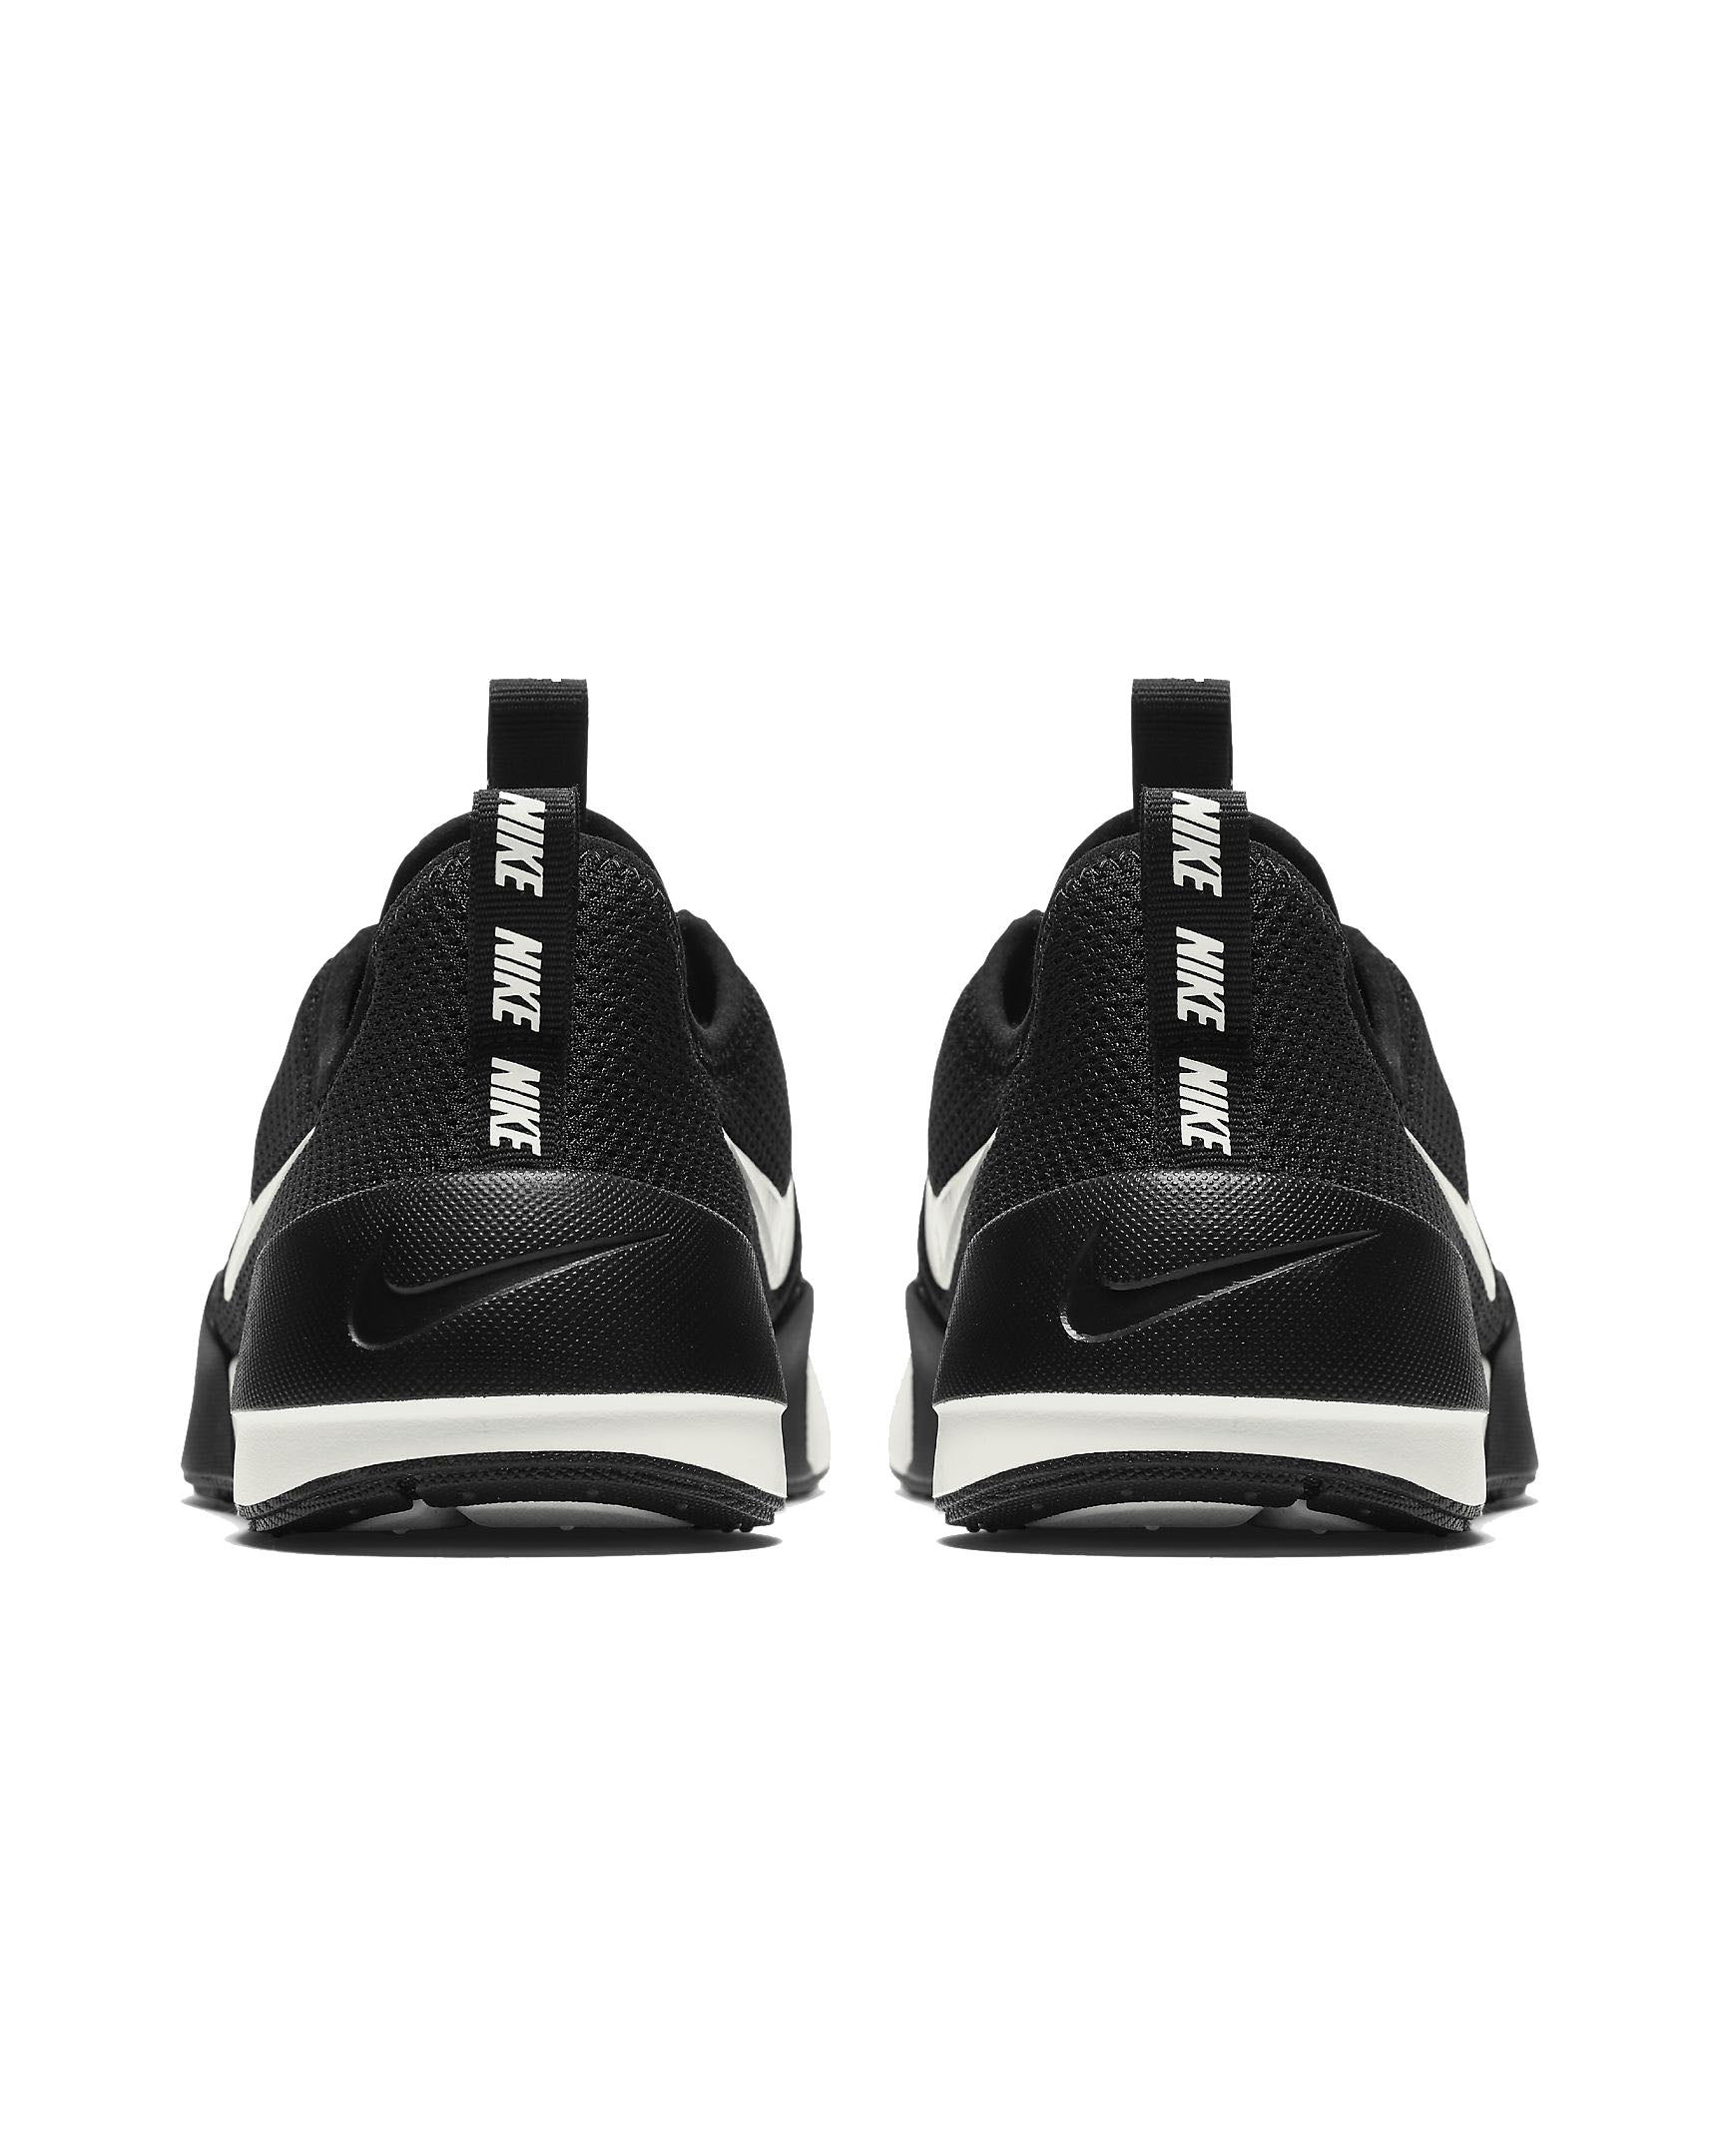 87b4ab656b1 Nike Ashin Modern AJ8799 002. 8AA.  80.00. The Nike Ashin Run Modern  Women s Shoe ...